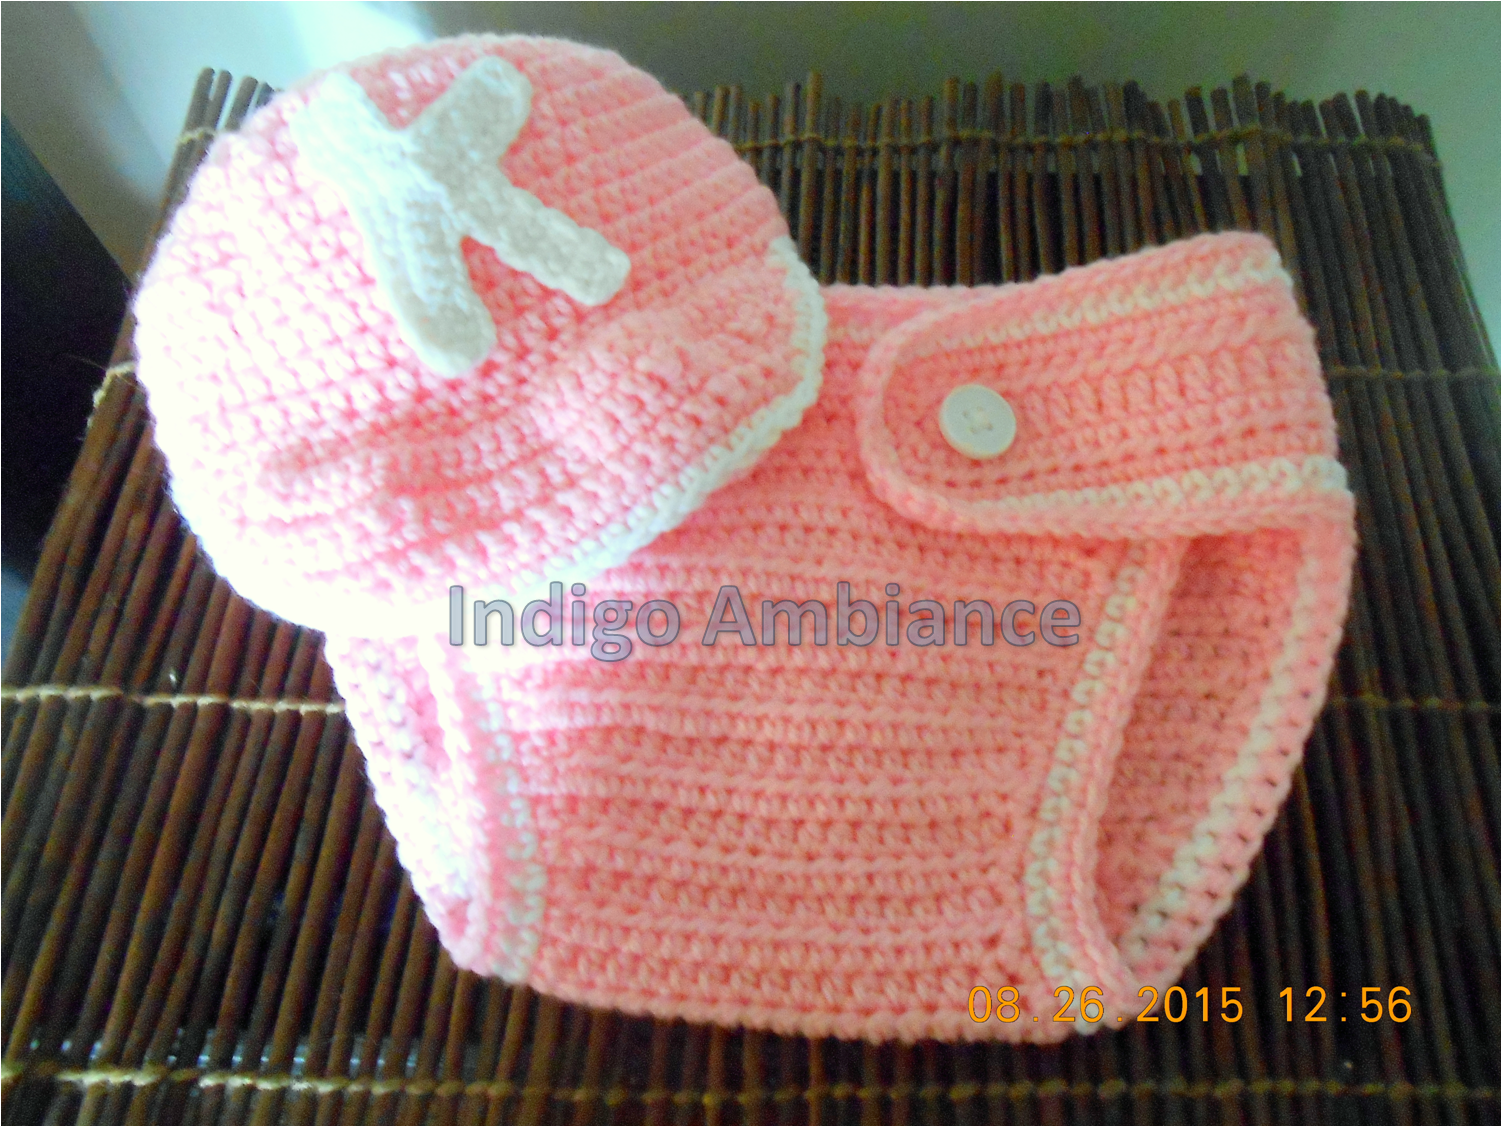 Pink baseball cap diaper cover made by indigo ambiance hat pink baseball cap diaper cover made by indigo ambiance hat pattern by mara callahan bankloansurffo Images